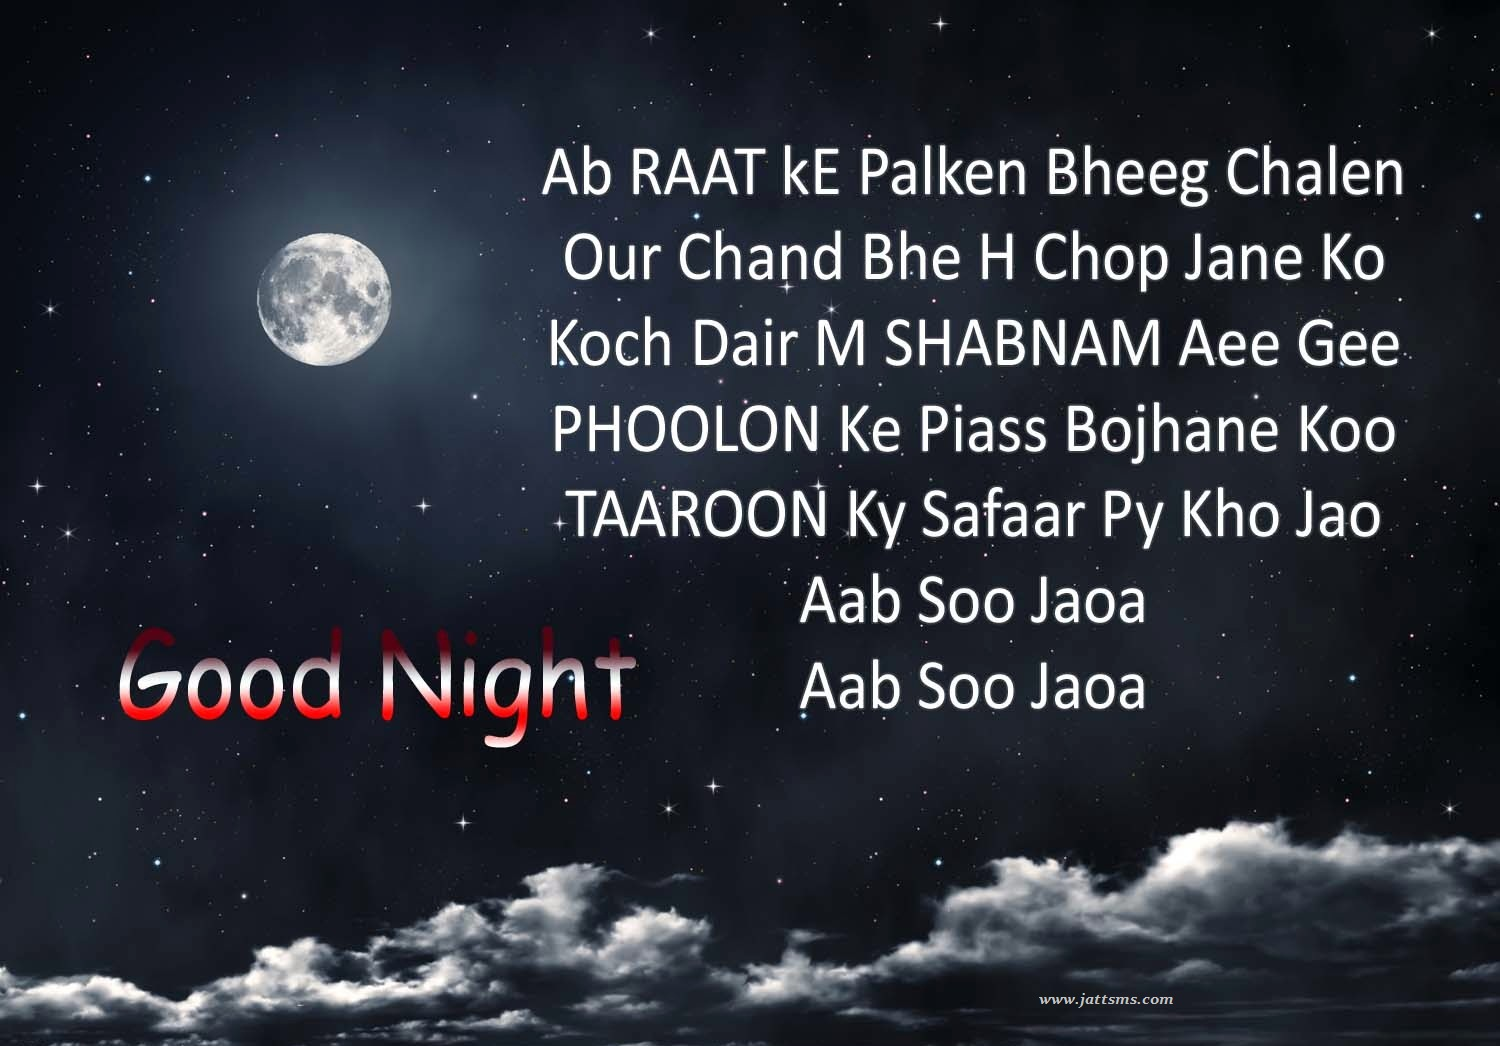 Elegant Good Night Hindi Sms Image Top Colection For Greeting And